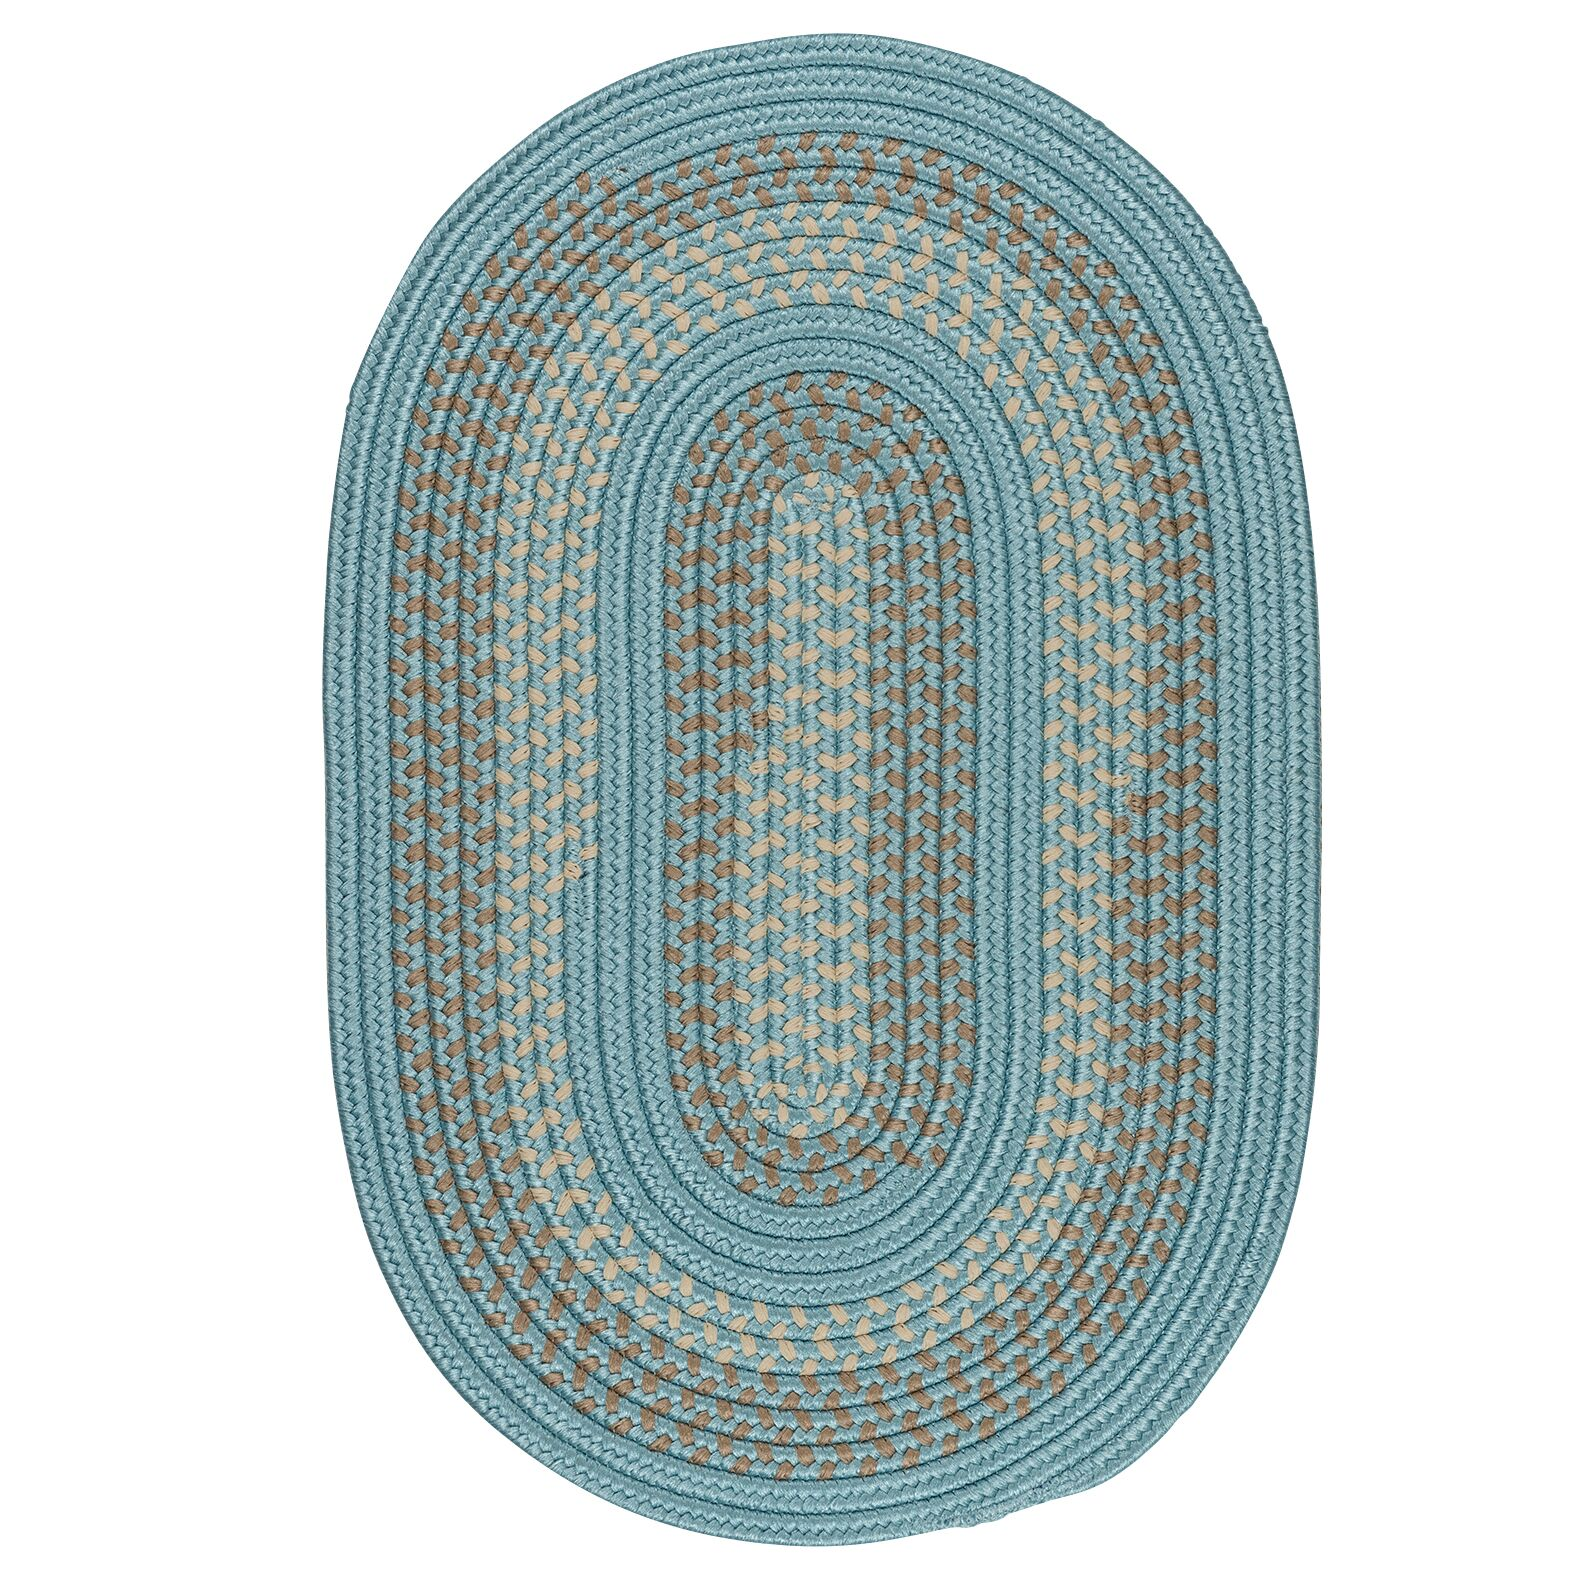 Knudtson Federal Blue Indoor/Outdoor Area Rug Rug Size: Oval 4' x 6'